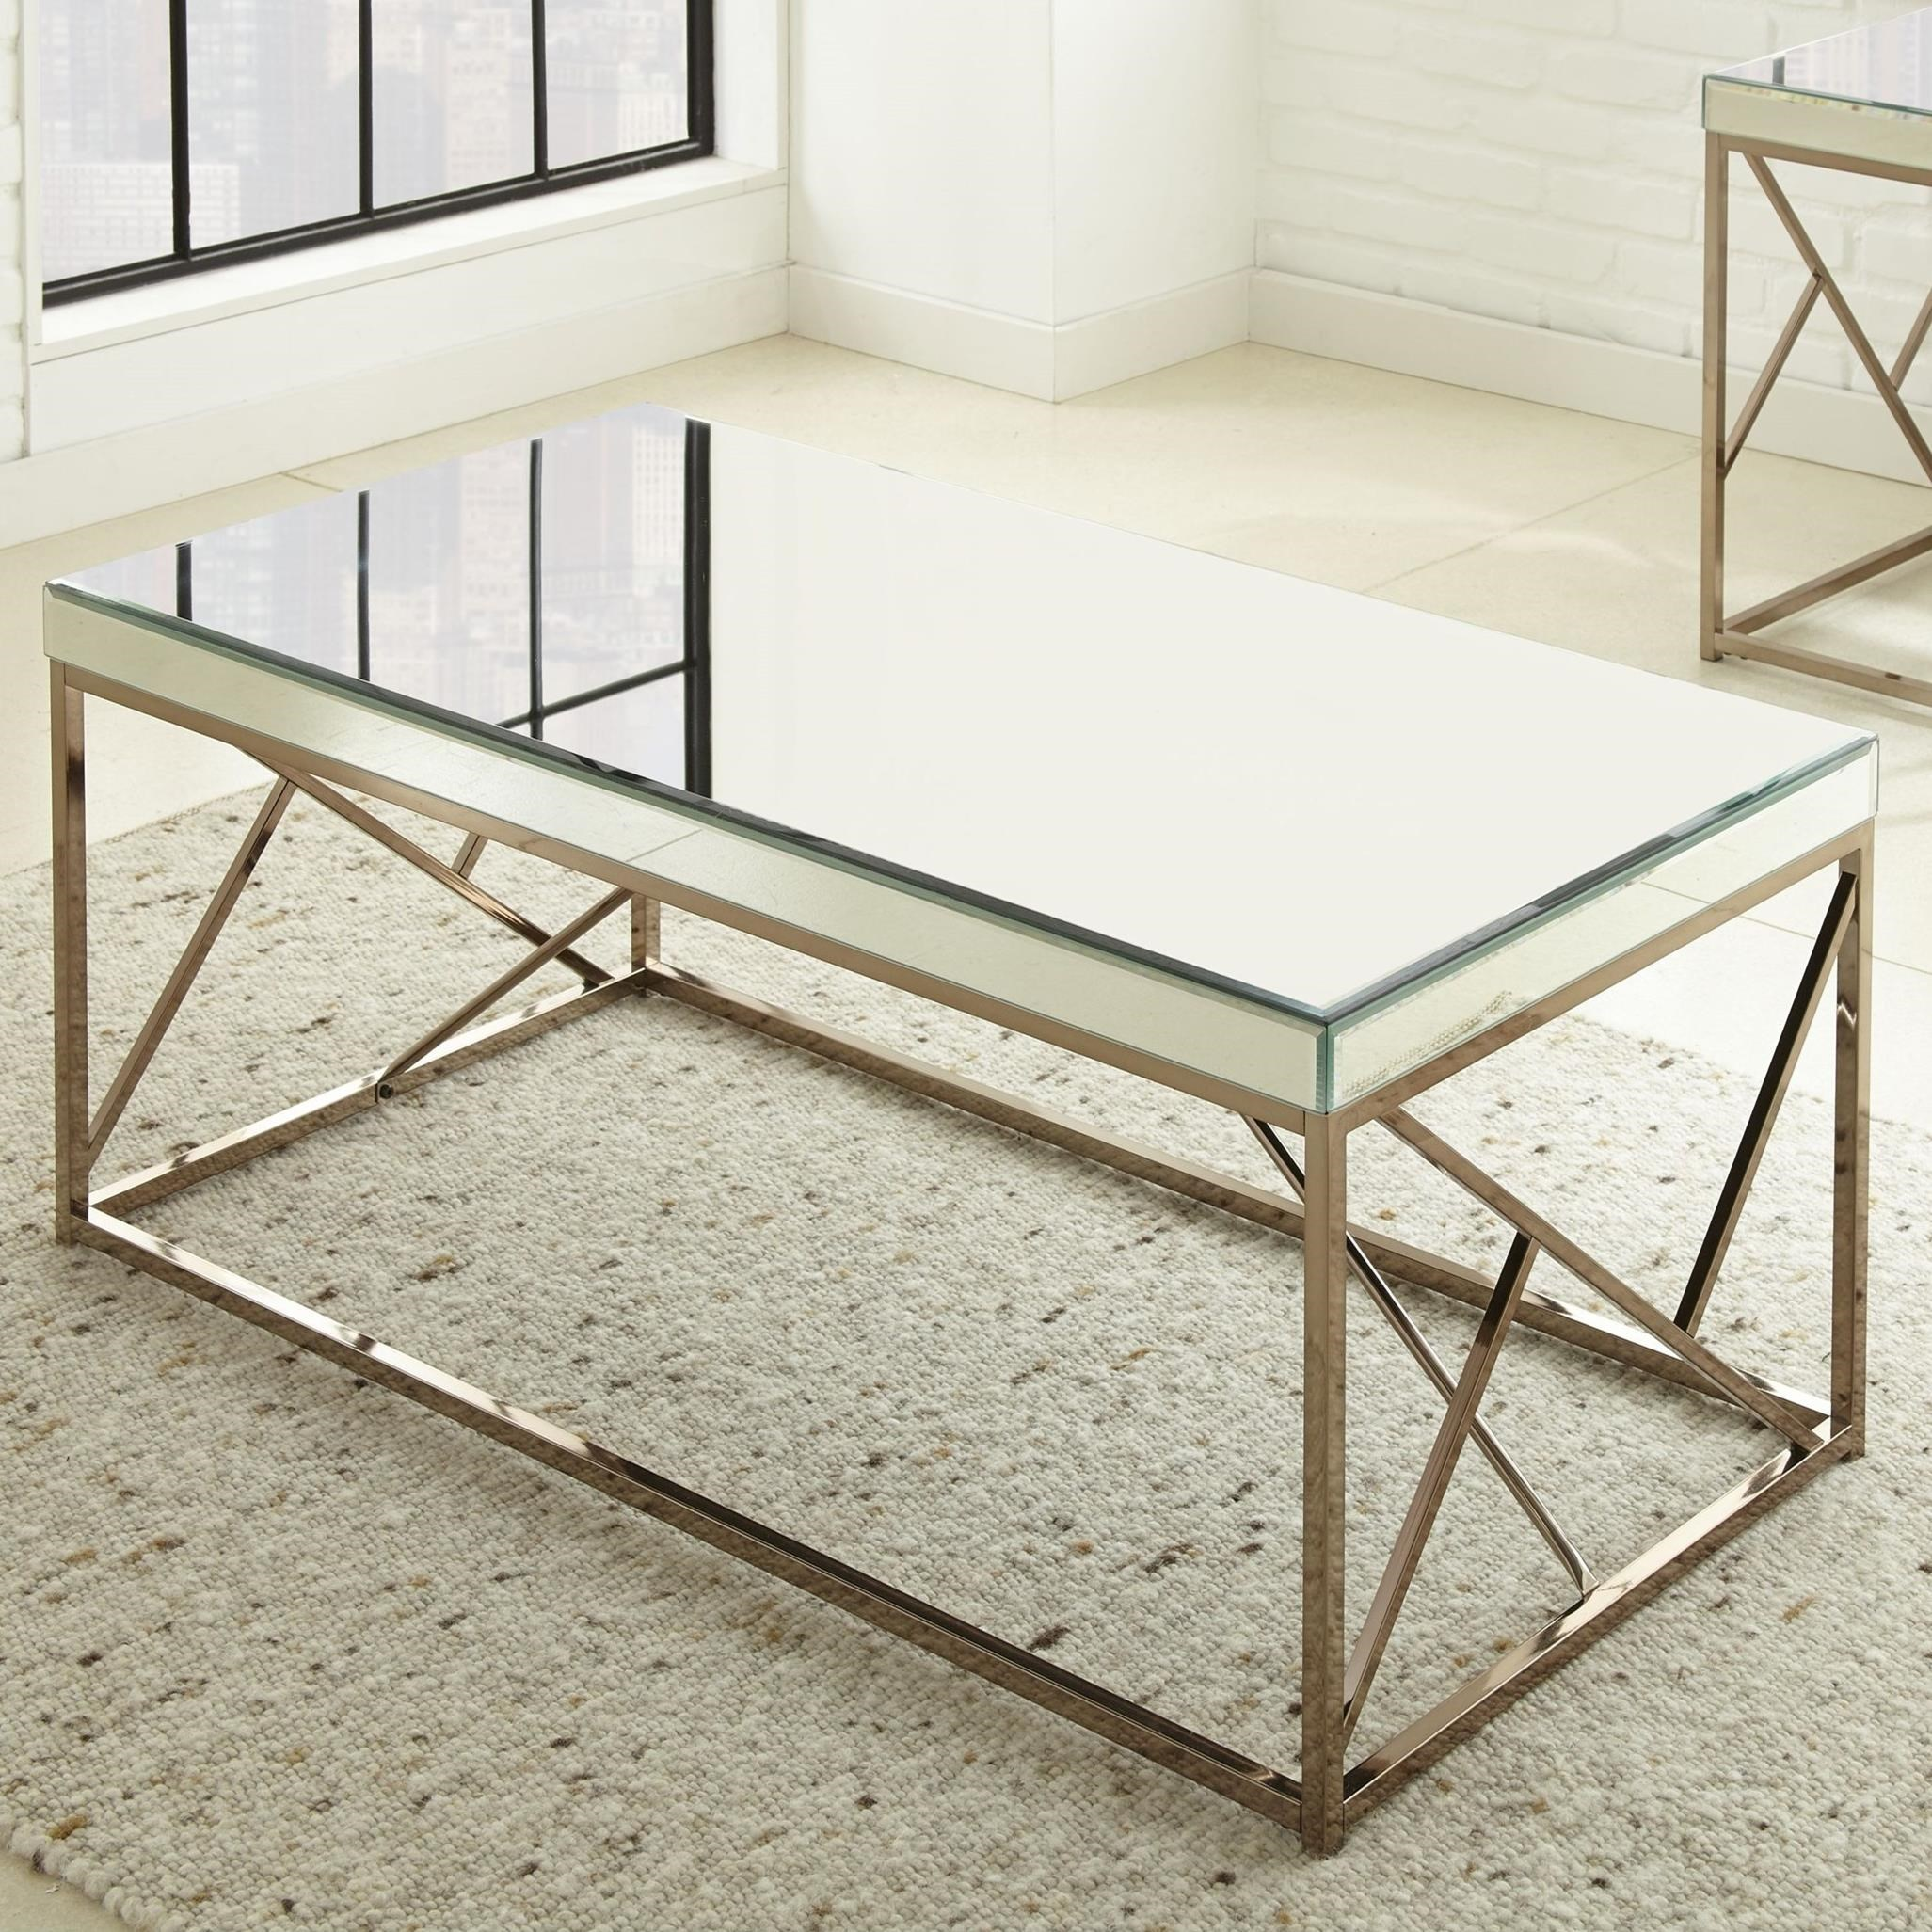 Evelyn Cocktail Table by Steve Silver at Northeast Factory Direct